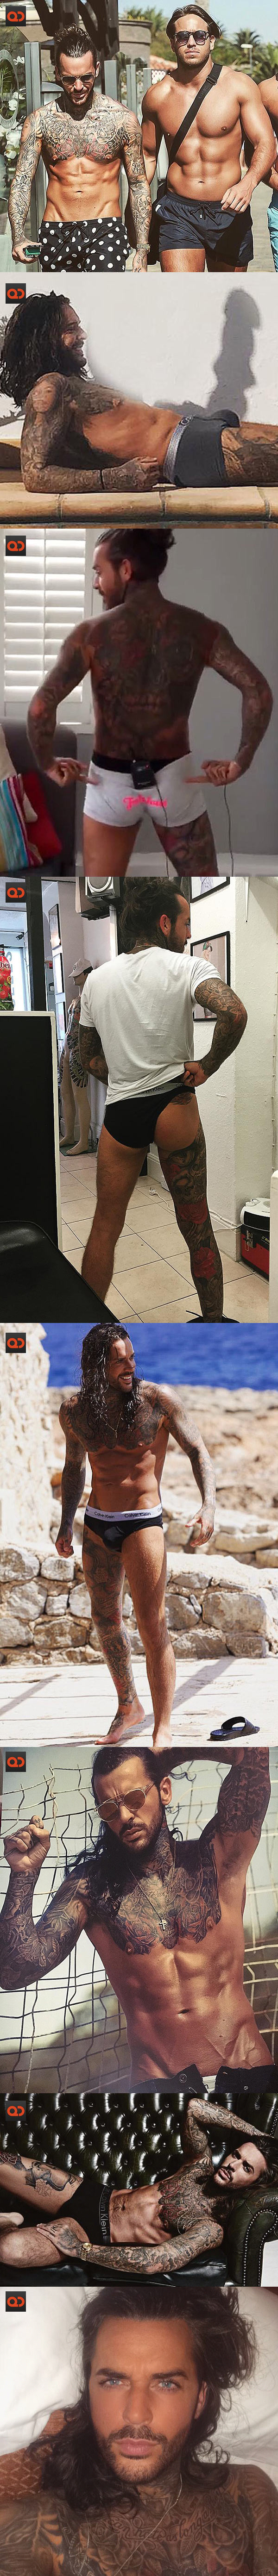 Pete Wicks, From The Only Way Is Essex Series 15, Exposed Cock In Leaked Snap Pic!